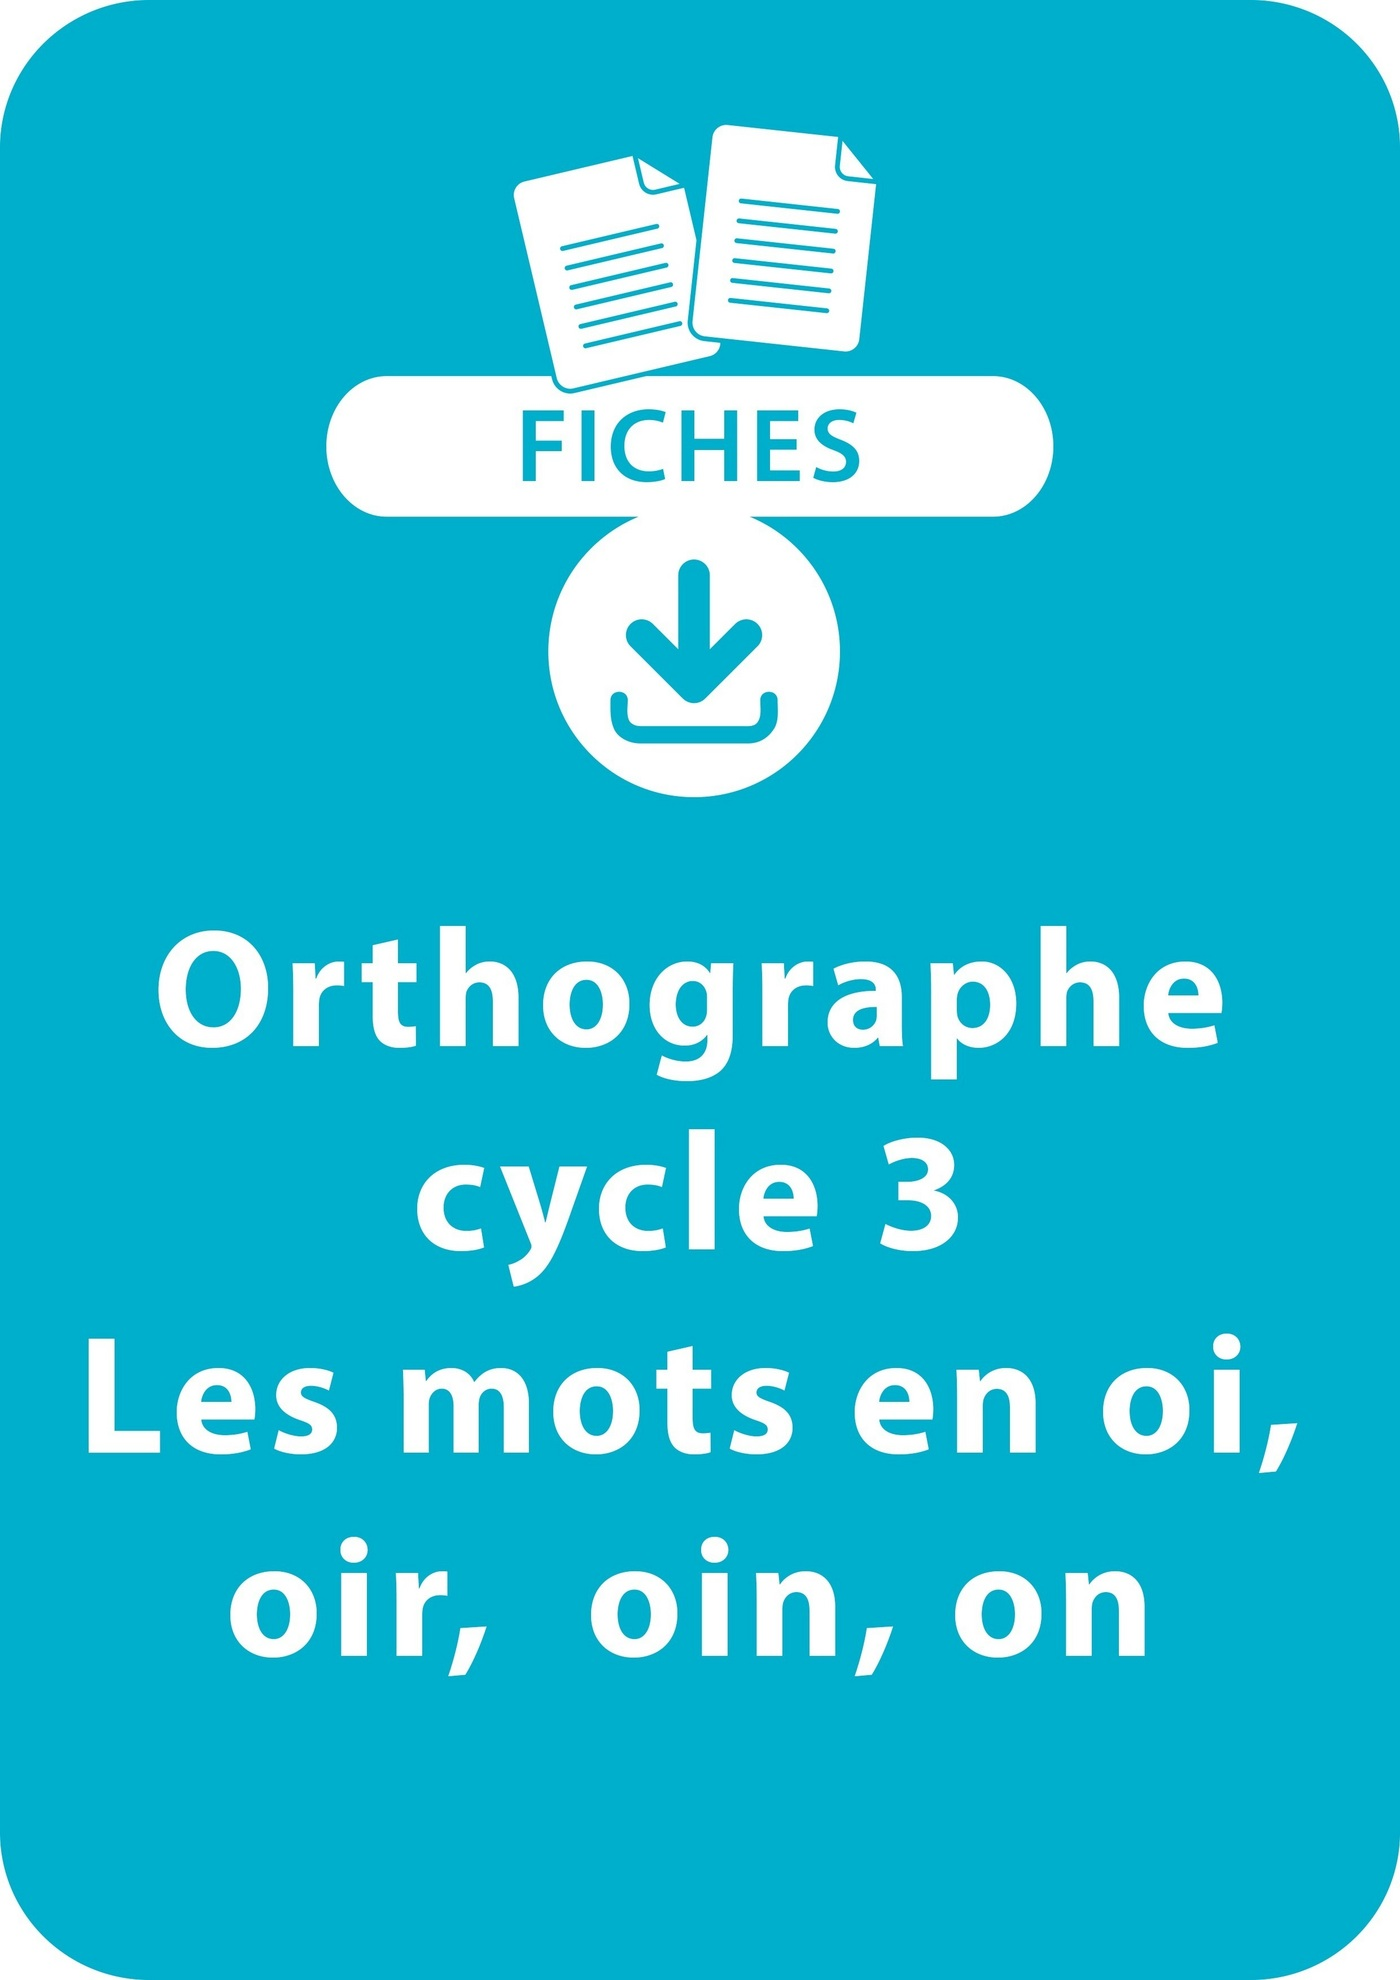 Orthographe Cycle 3 - Les mots en oi, oir, oin, on